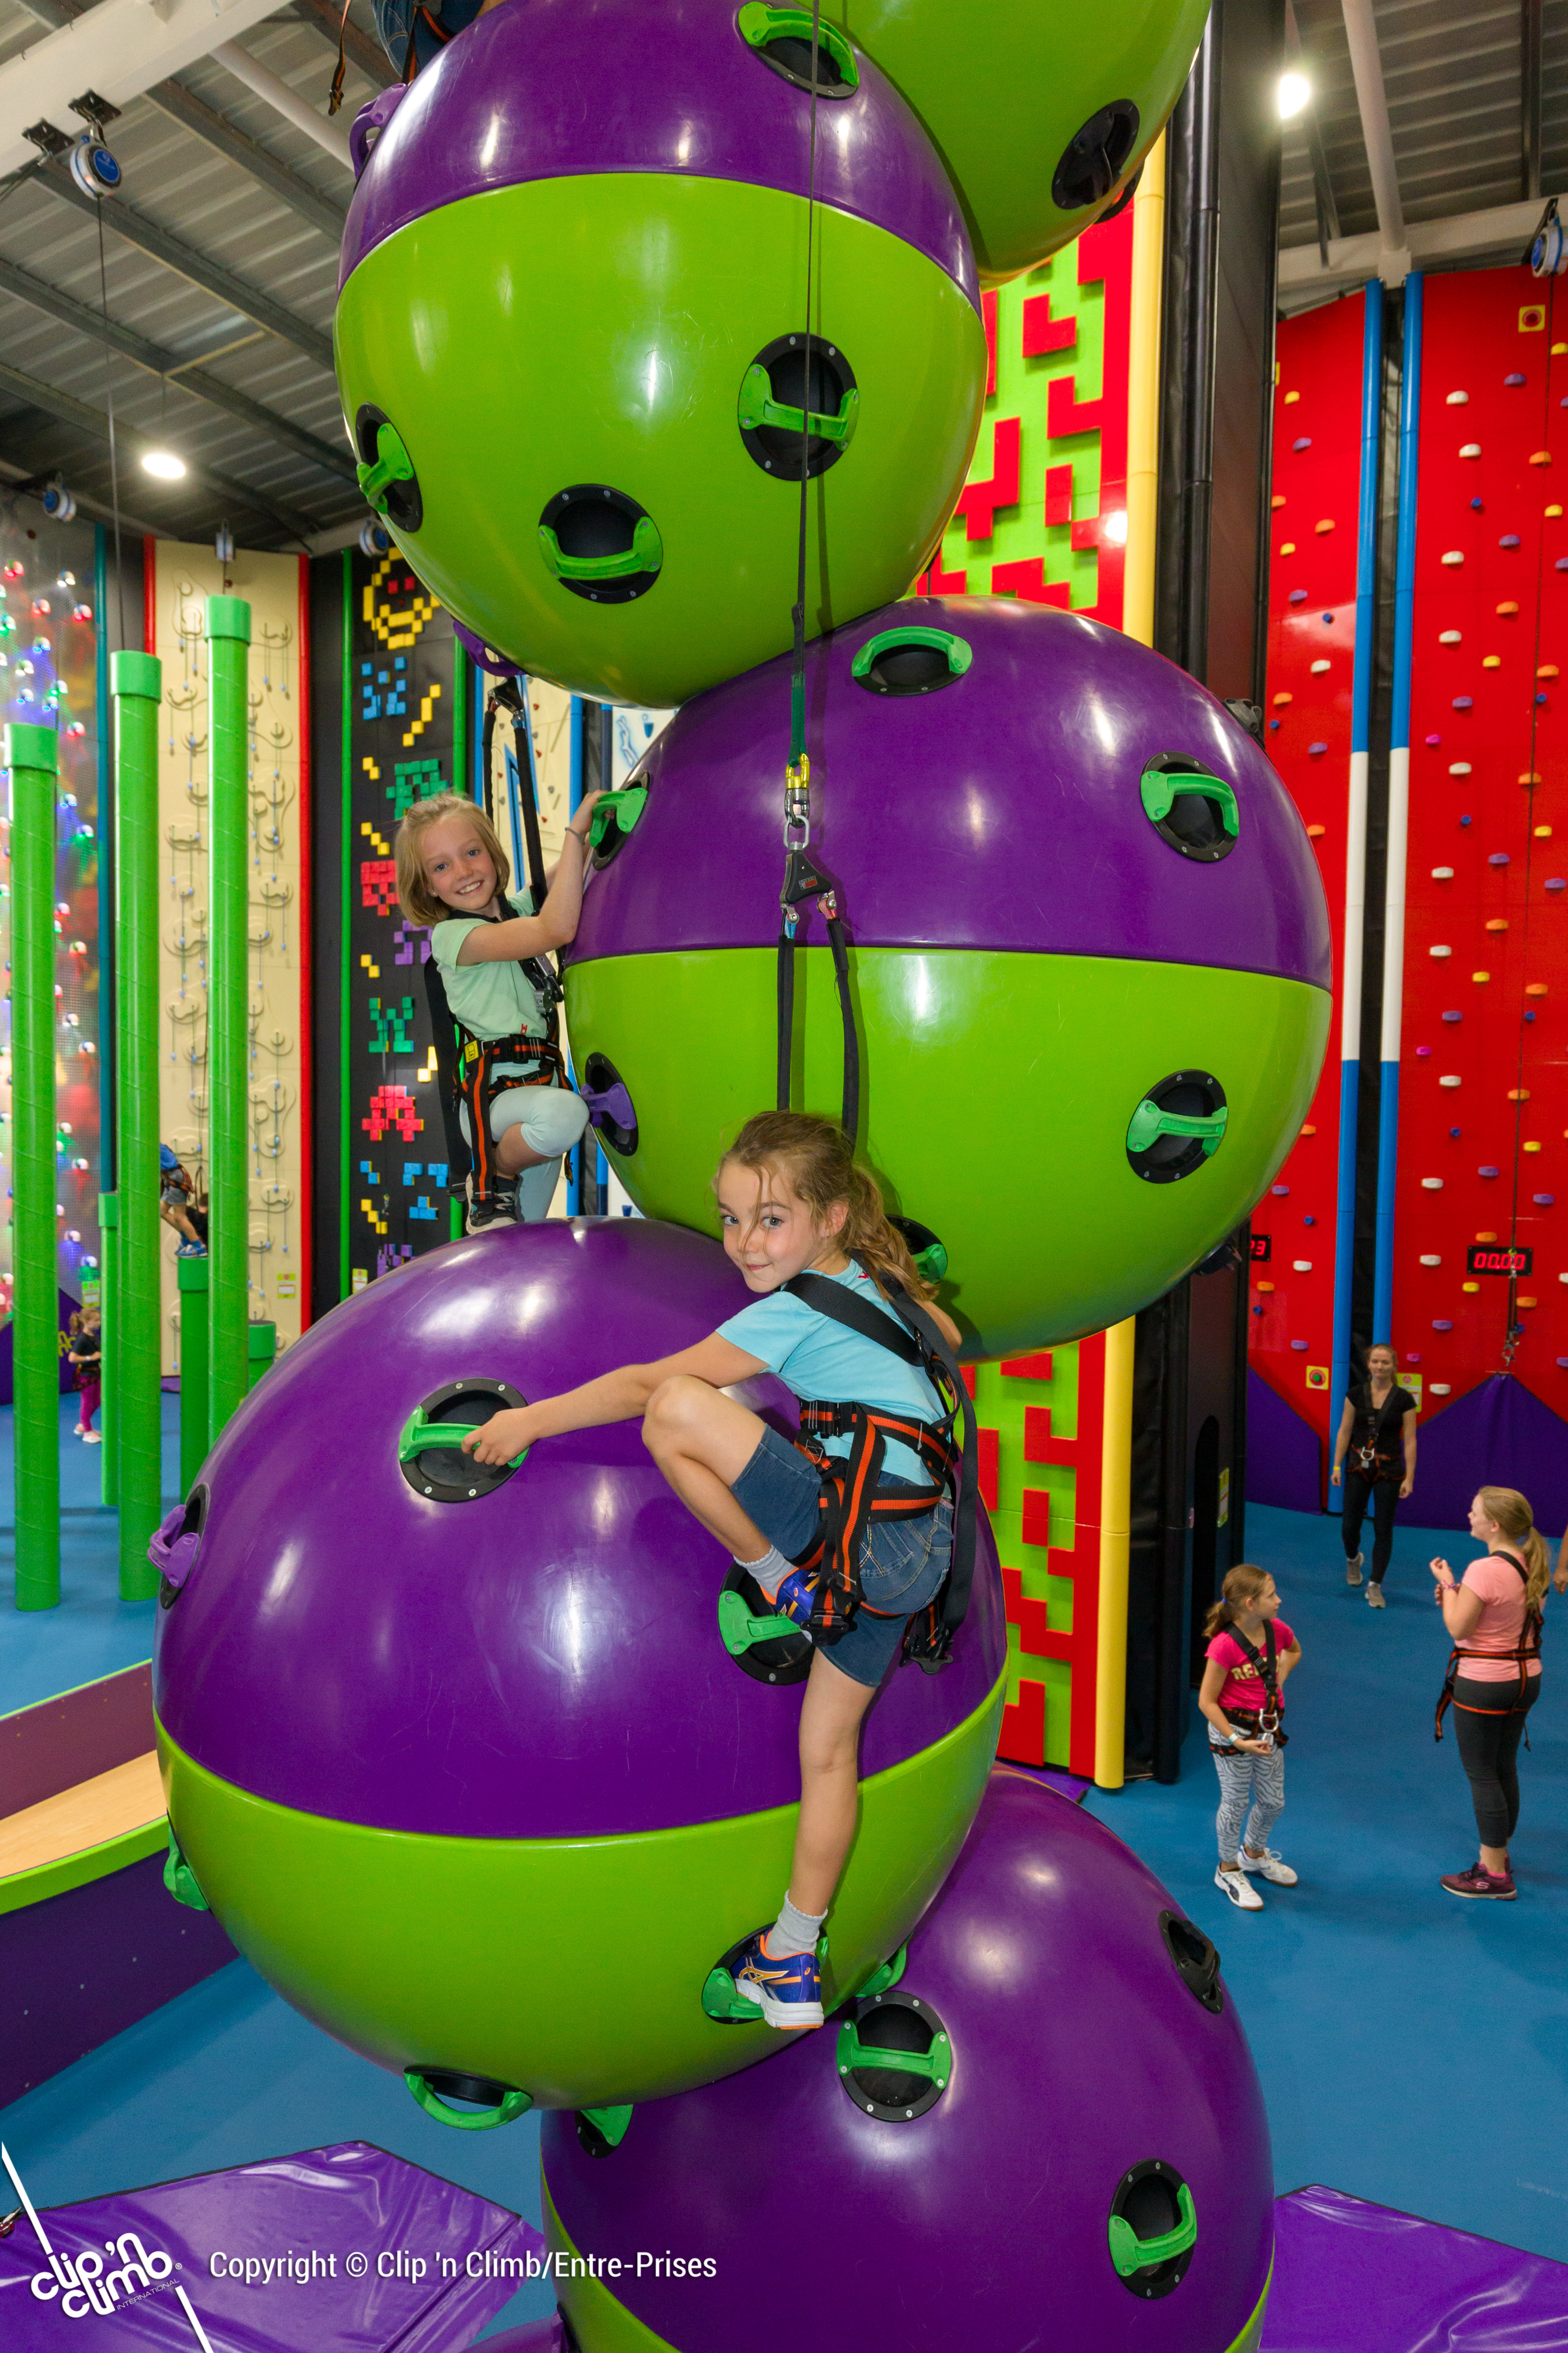 Wicksteed Park invests £700,000 in Clip 'n Climb family climbing attraction